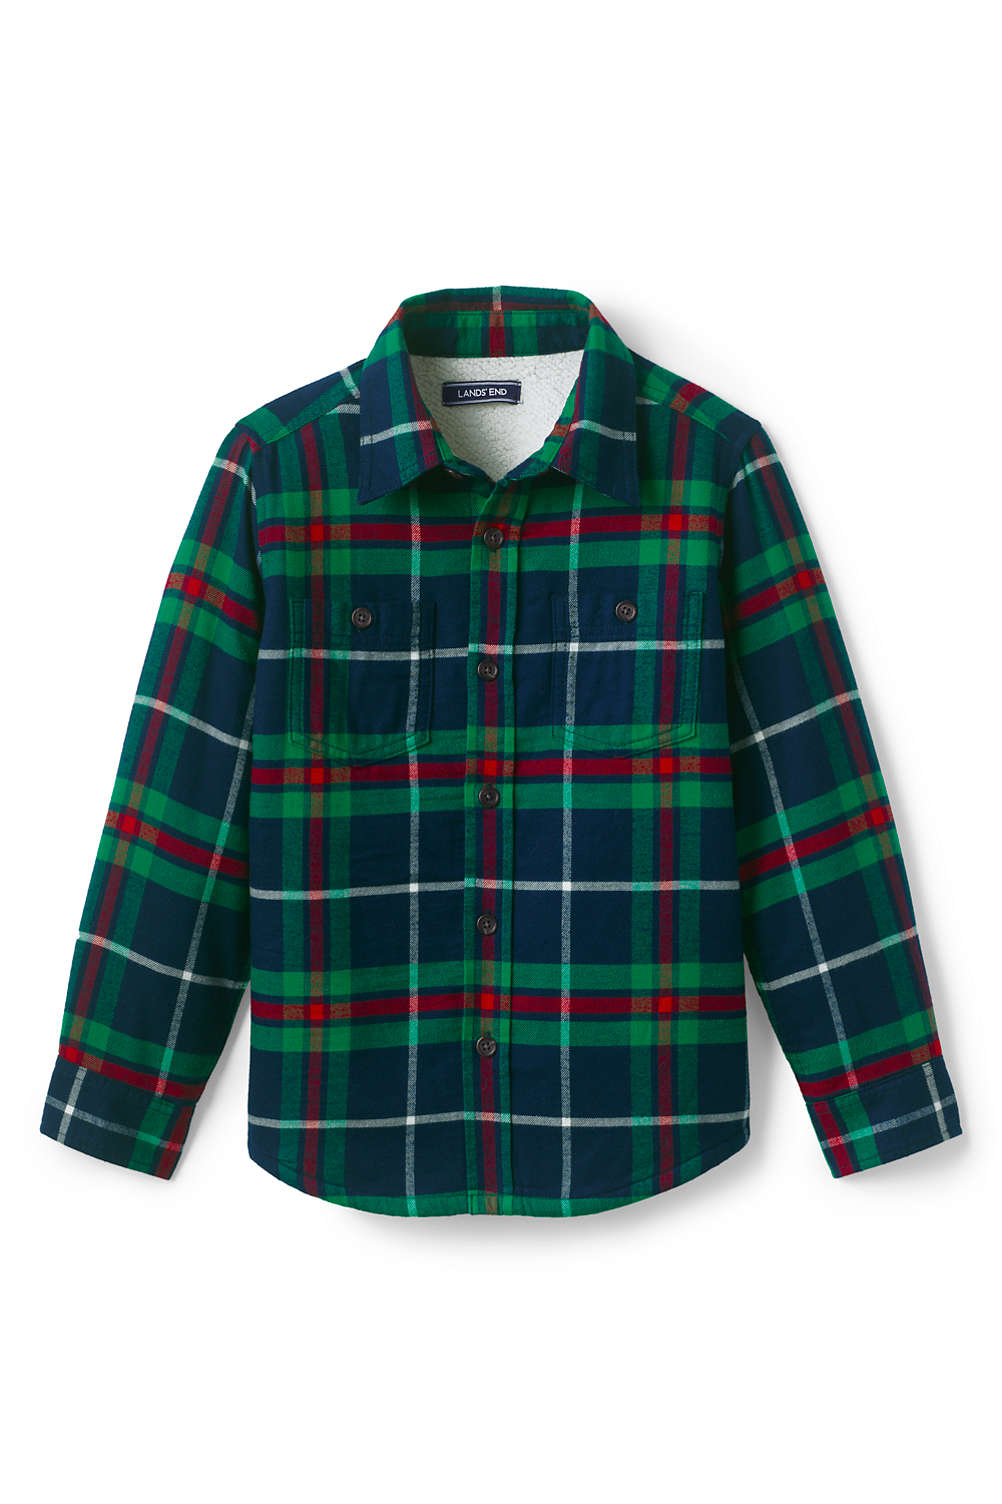 a624569a9 Boys Sherpa Lined Flannel Jacket from Lands' End